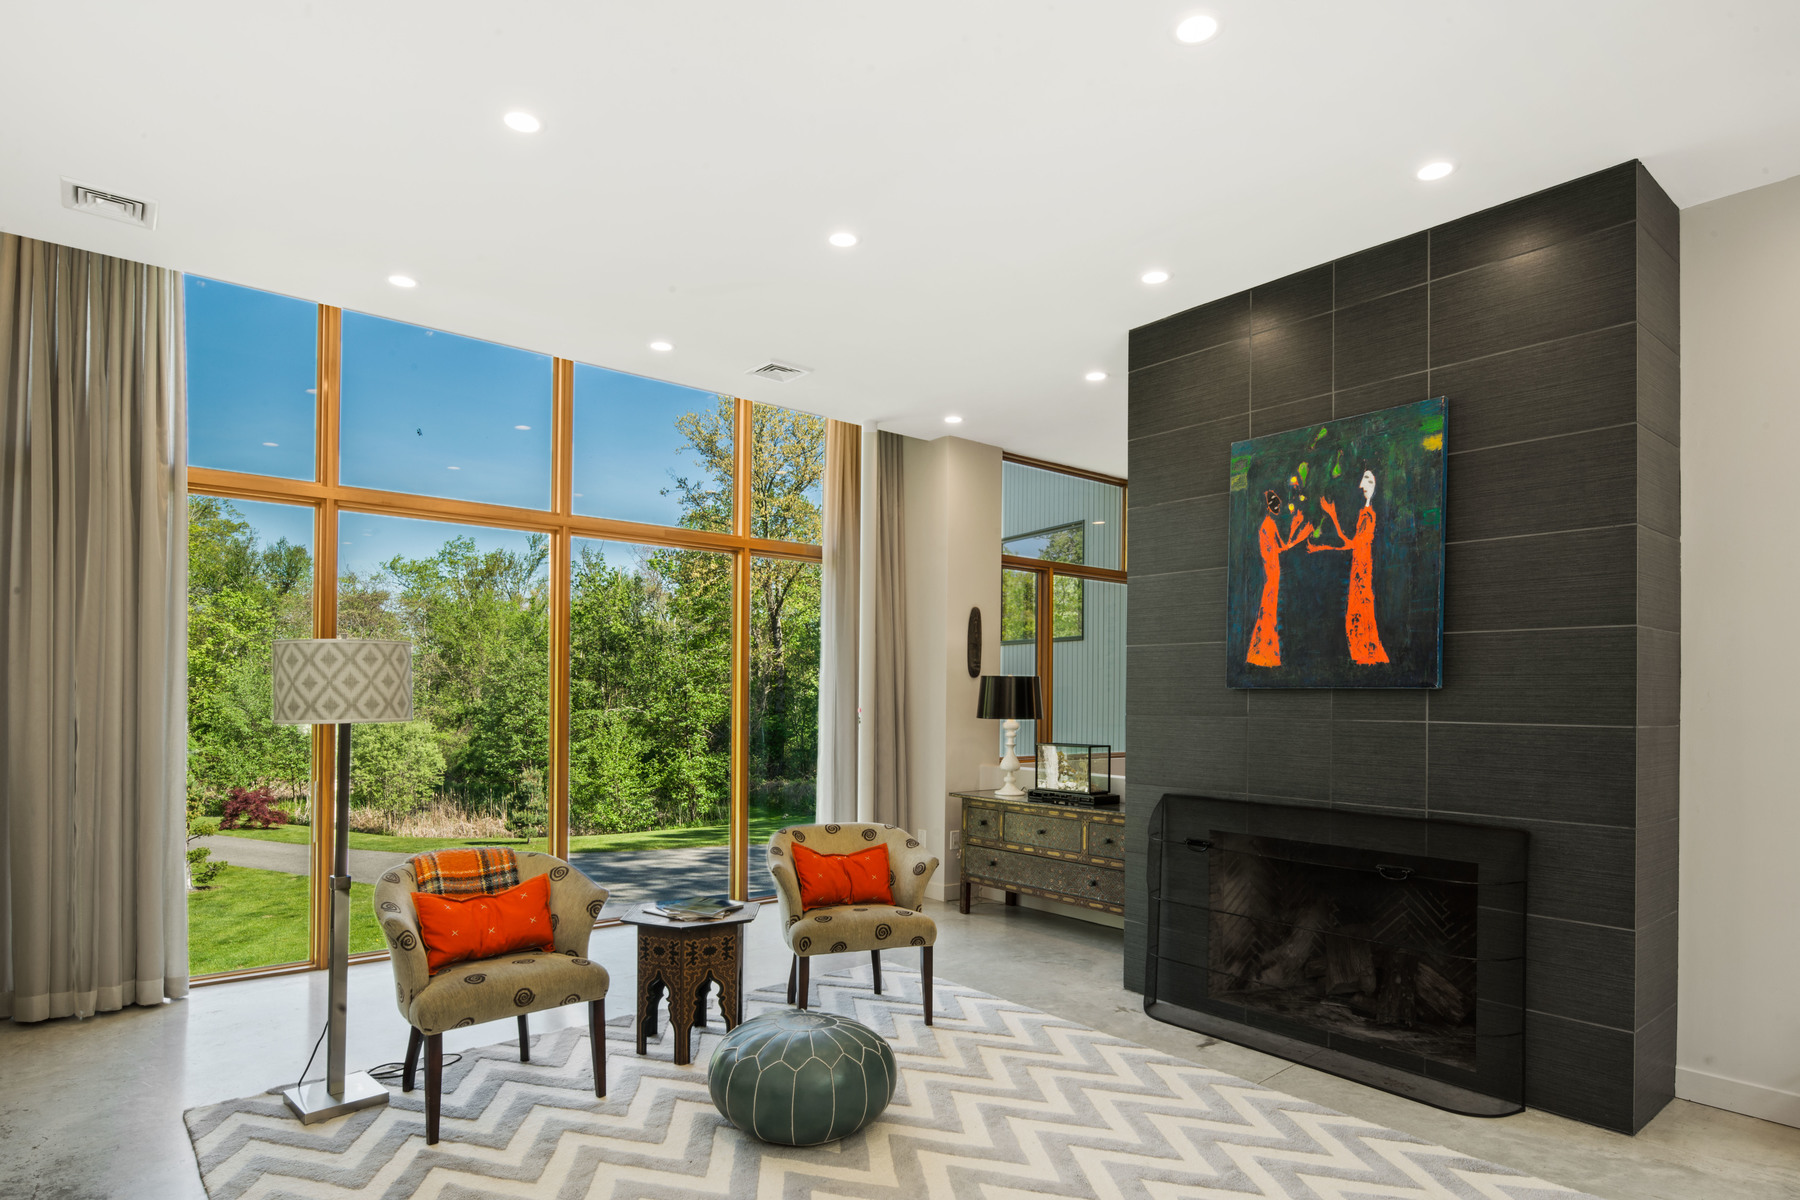 Additional photo for property listing at Contemporary Masterpiece Situated On 2.15 Private And Pristine Acres 120 Governor Stoughton Lane,  Milton, Massachusetts 02186 United States